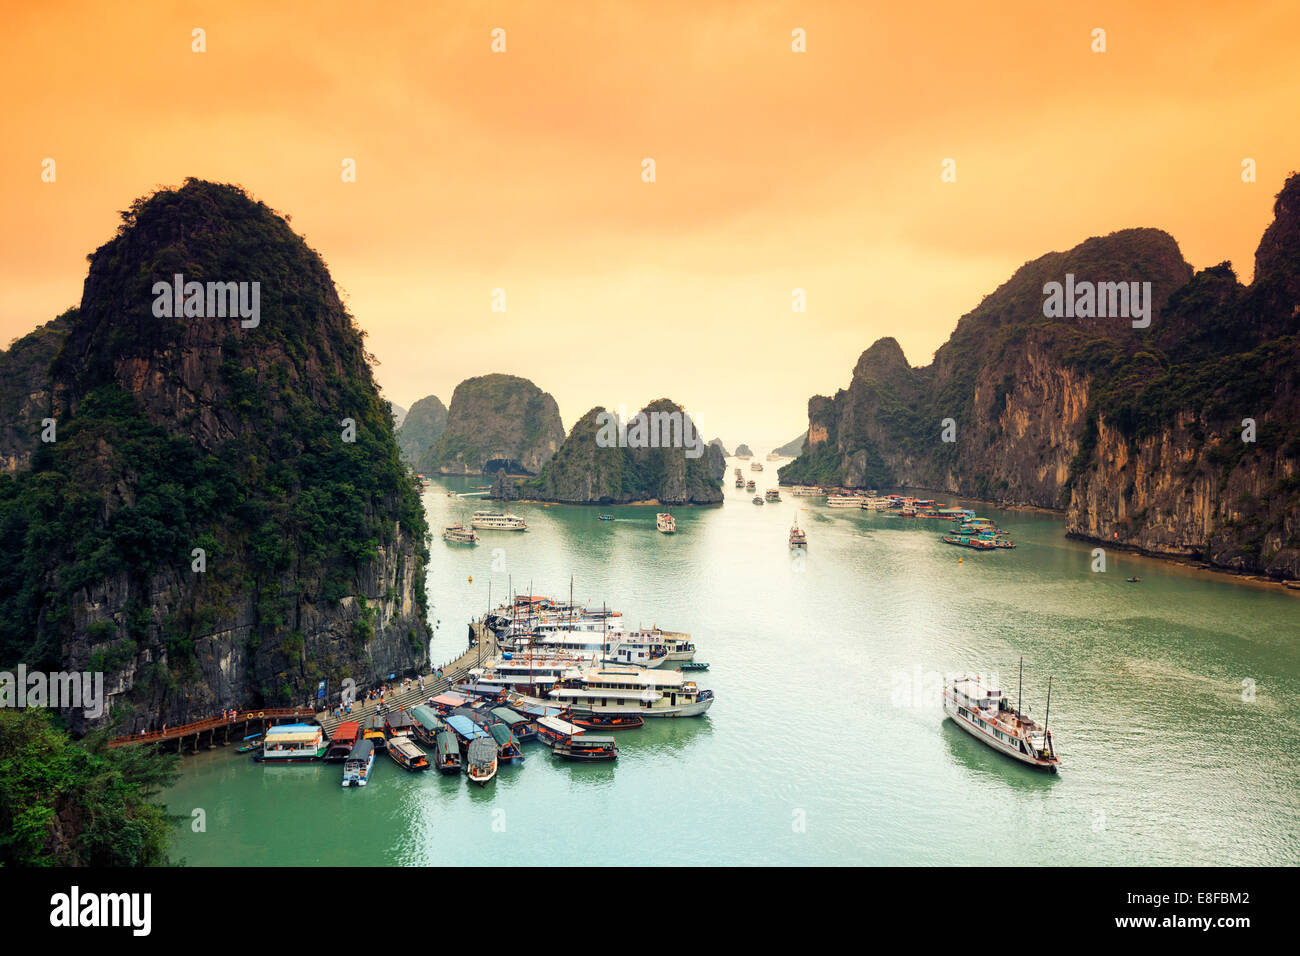 La baie d'Halong, Vietnam Photo Stock